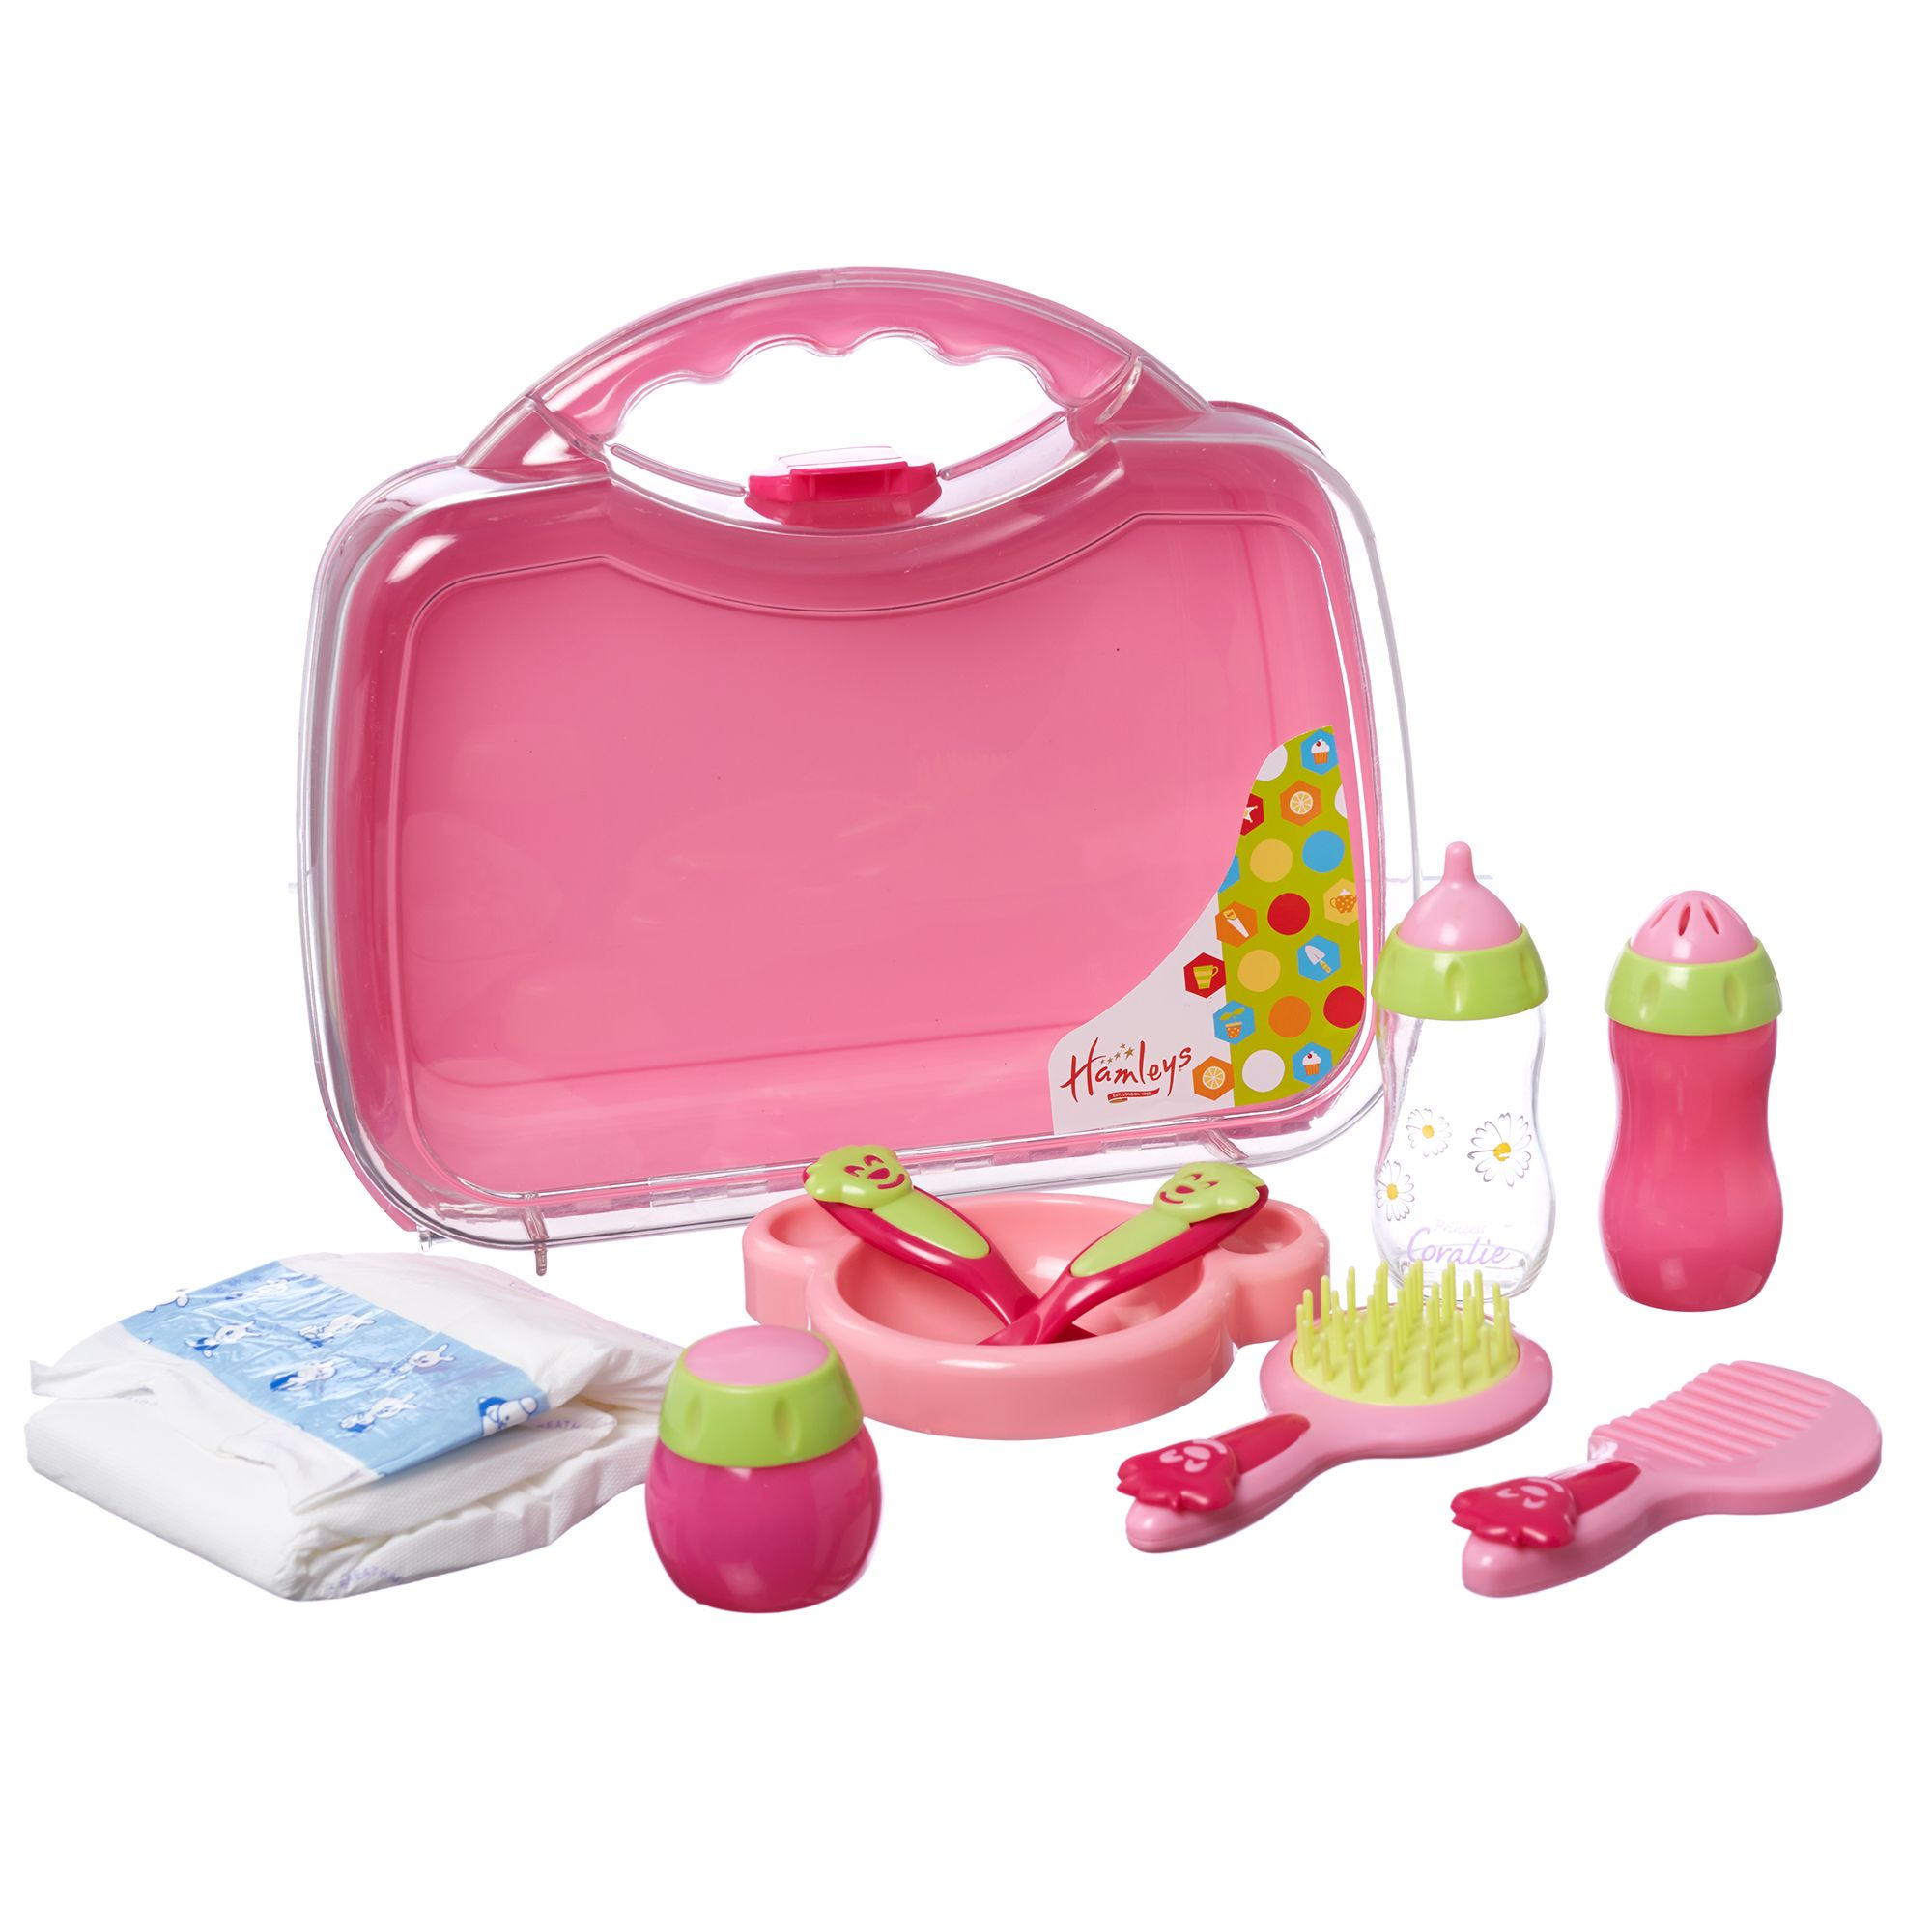 Hamleys Baby Travel Kit